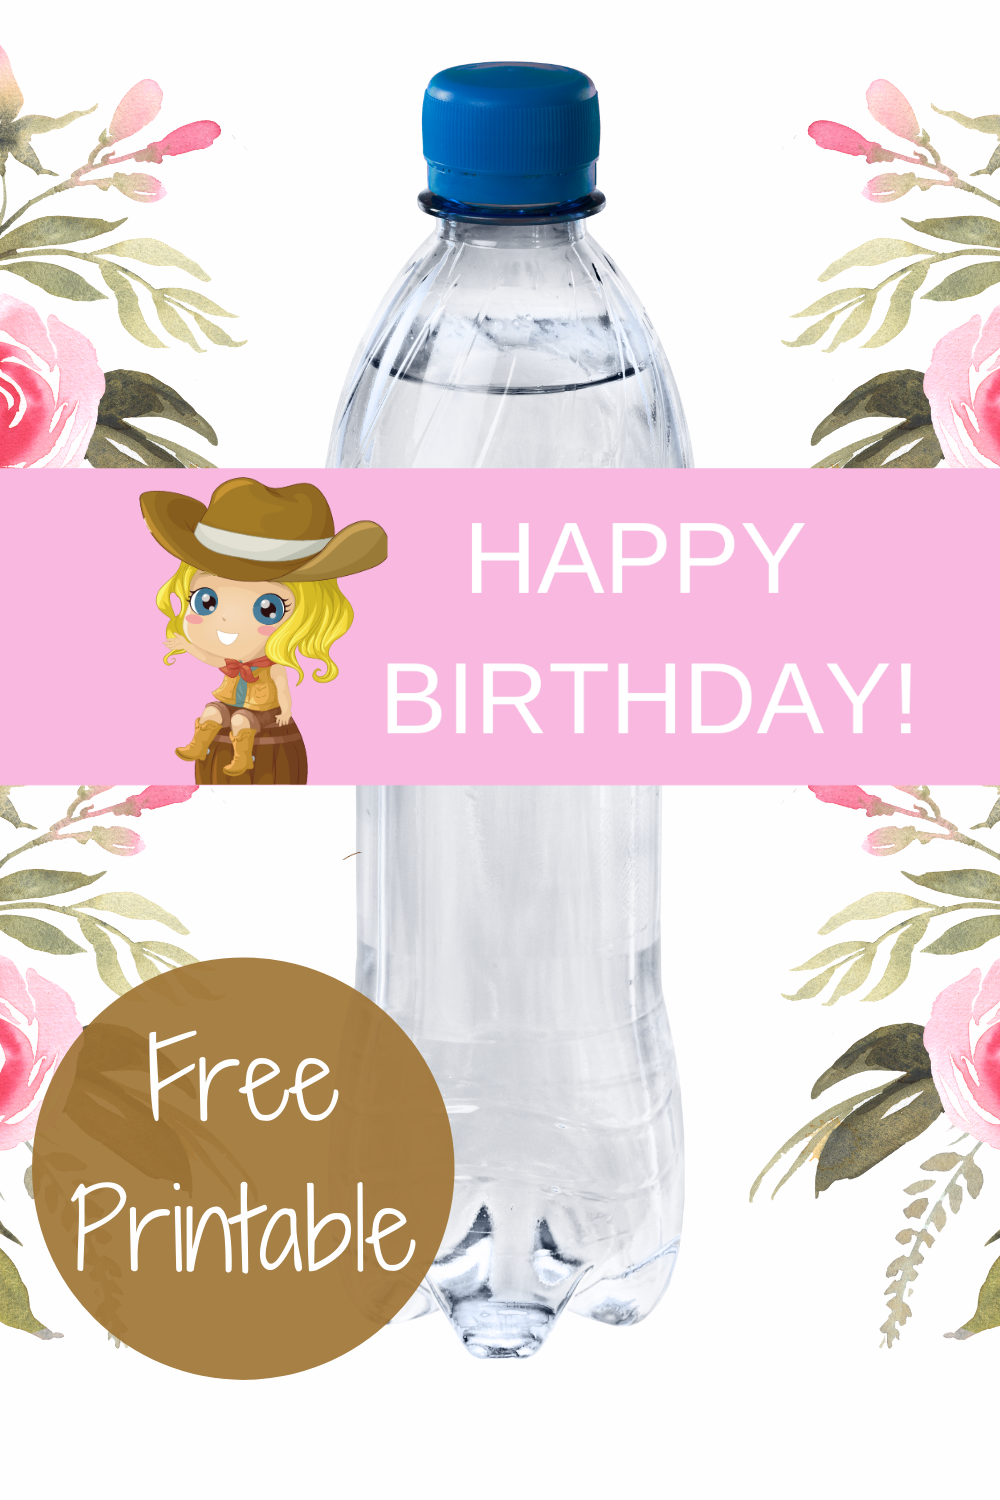 free download: cowgirl printable water bottle label for a birthday party